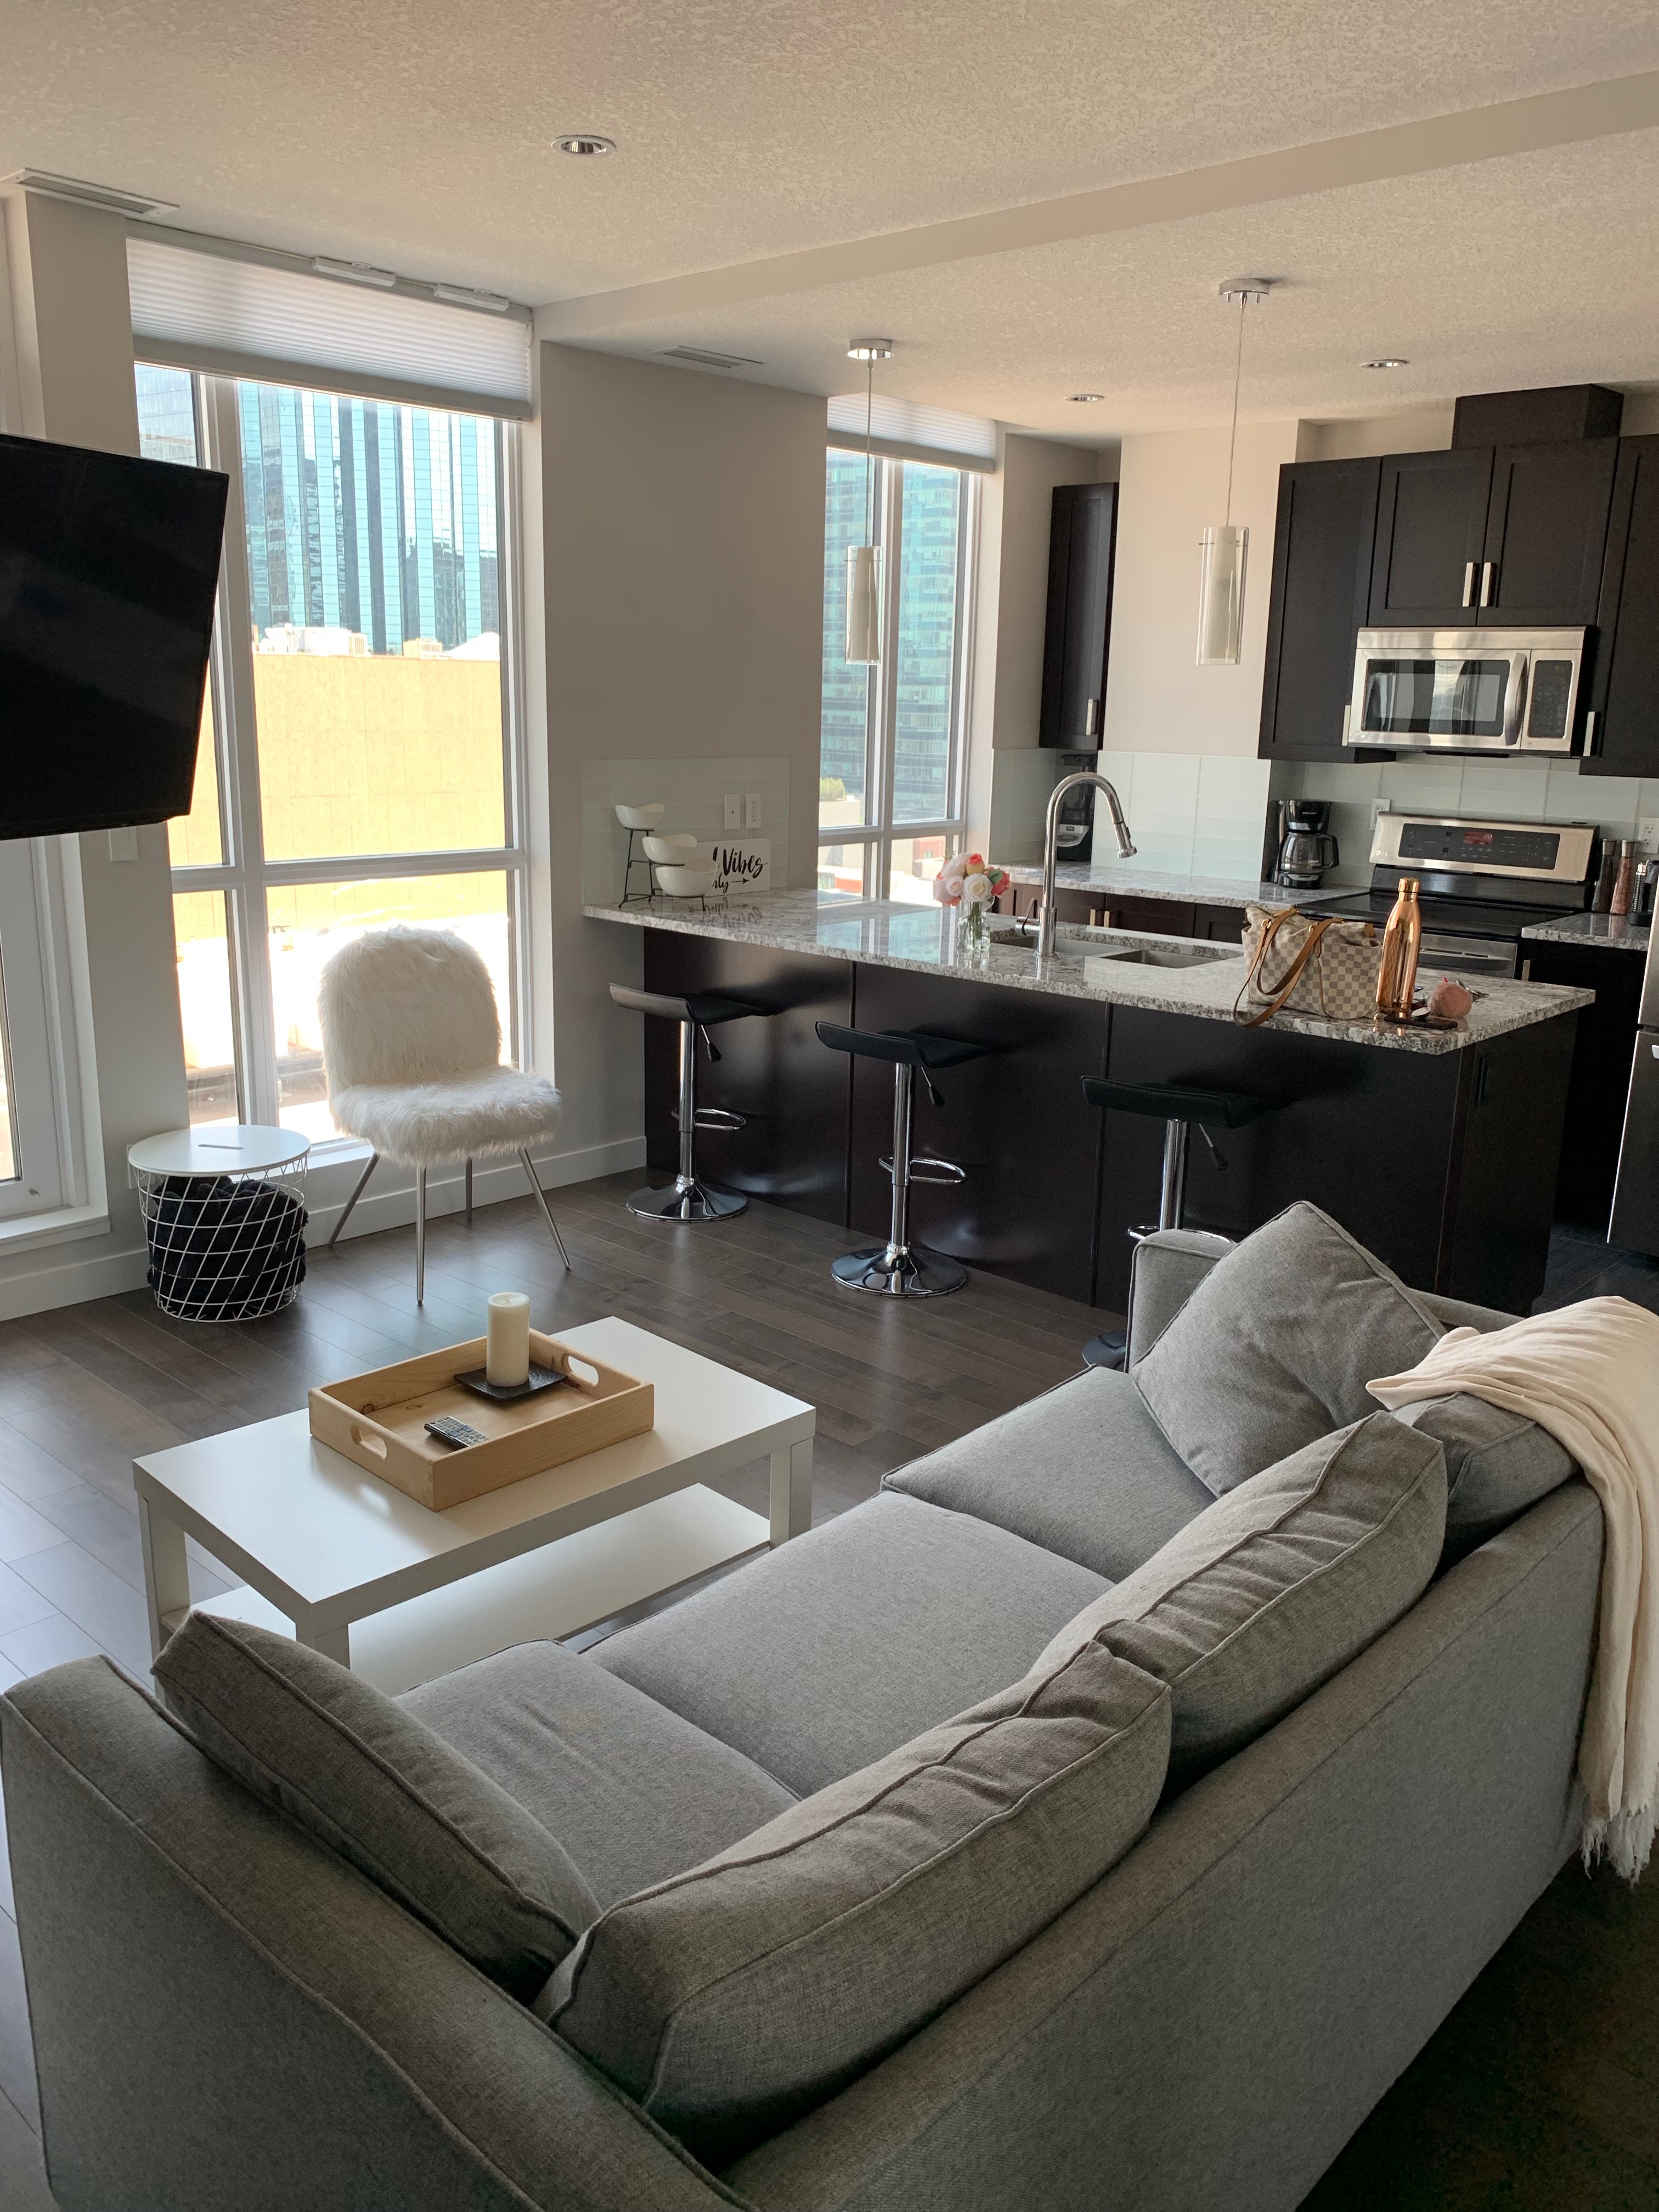 Fully Furnished 1 bed 1 bath in THE ULTIMA TOWER Downtown. $2000